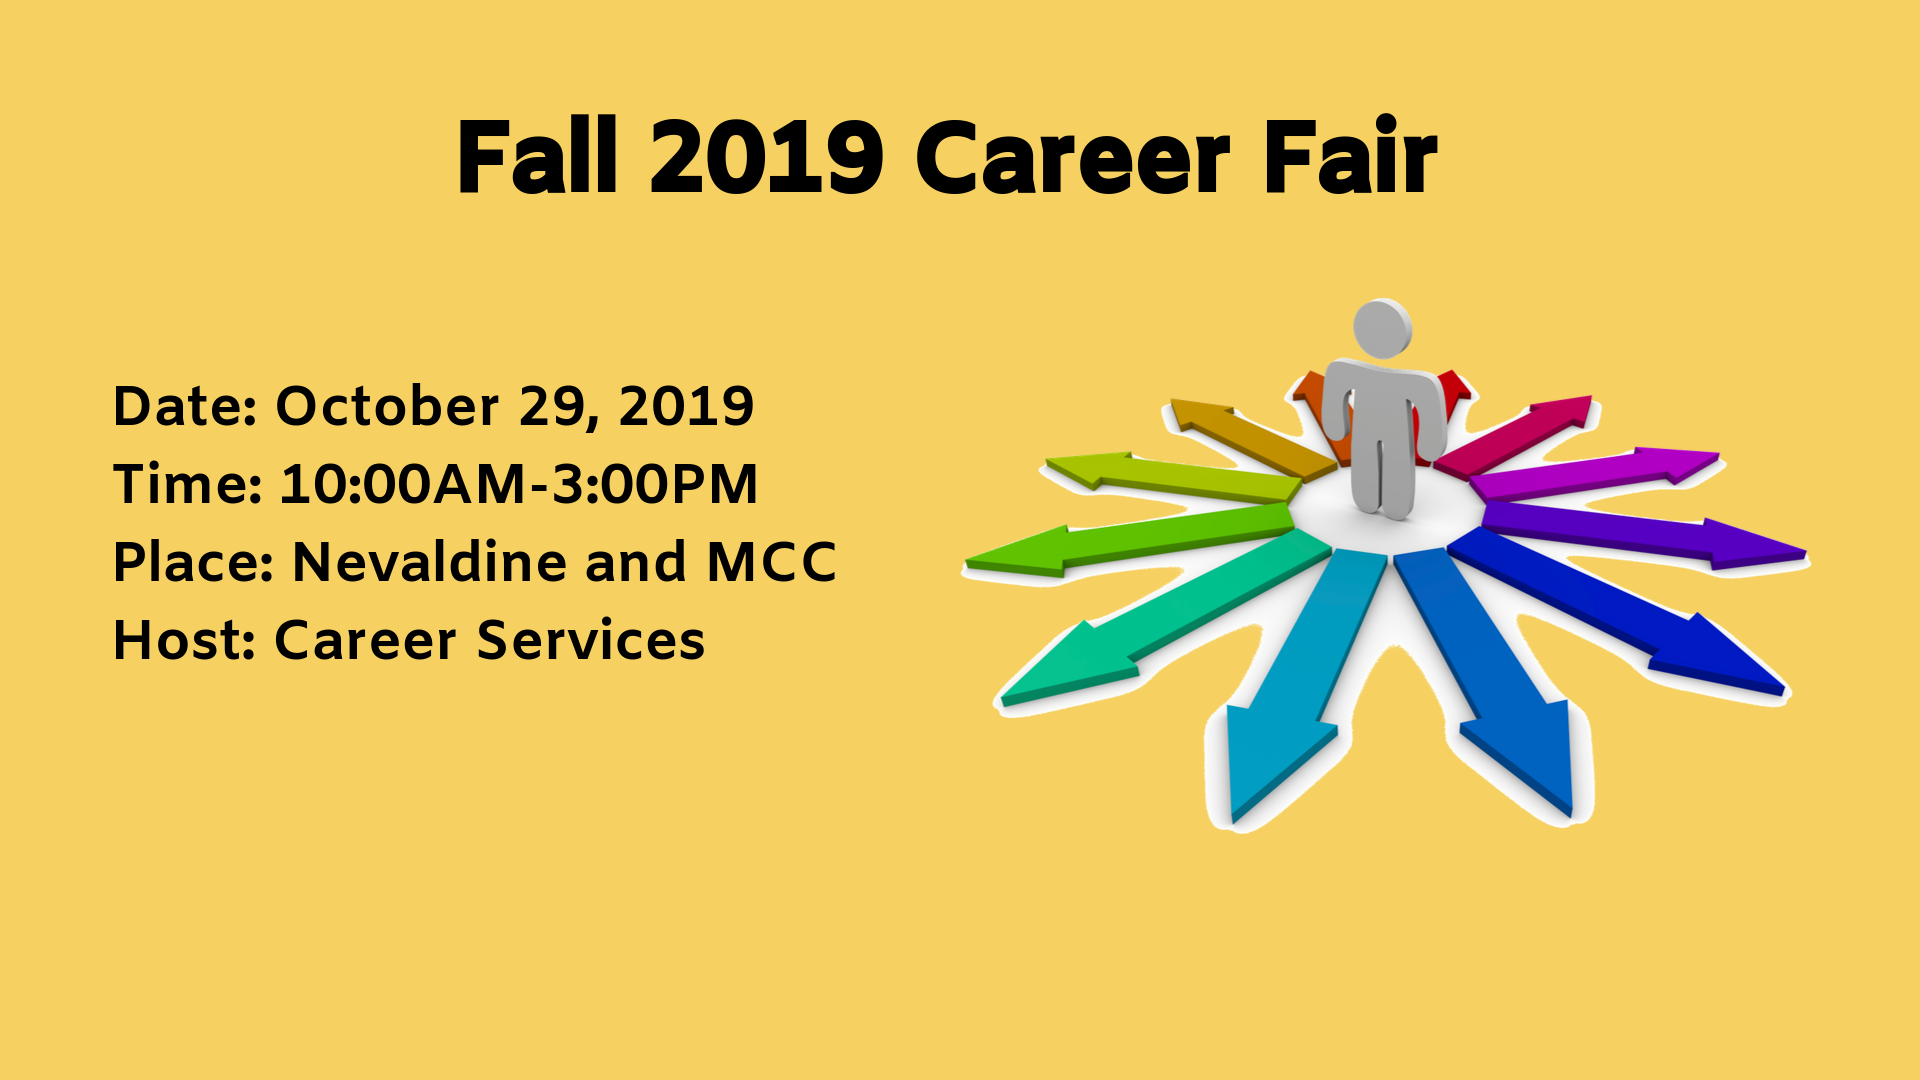 Fall 2019 Career Fair. Date: October 29, 2019 Time: 10:00AM-3:00PM Place: Nevaldine and MCC Host: Career Services